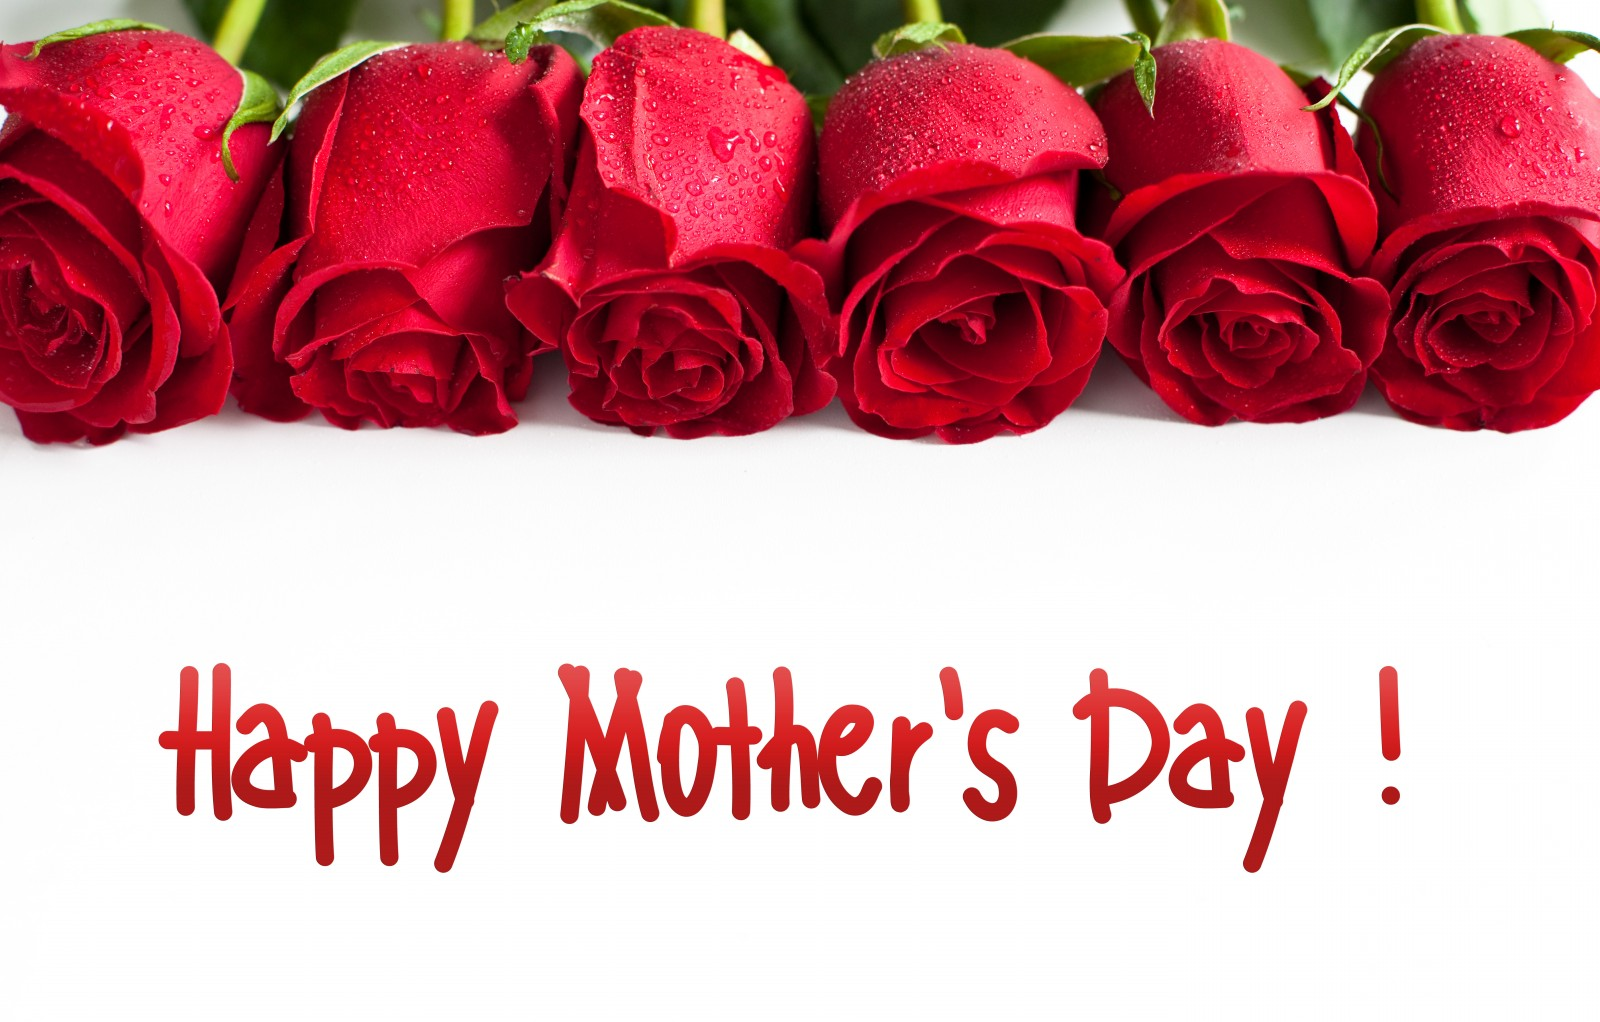 Happy mothers day images wallpaper and greetings polesmag 2016 mothers day photos m4hsunfo